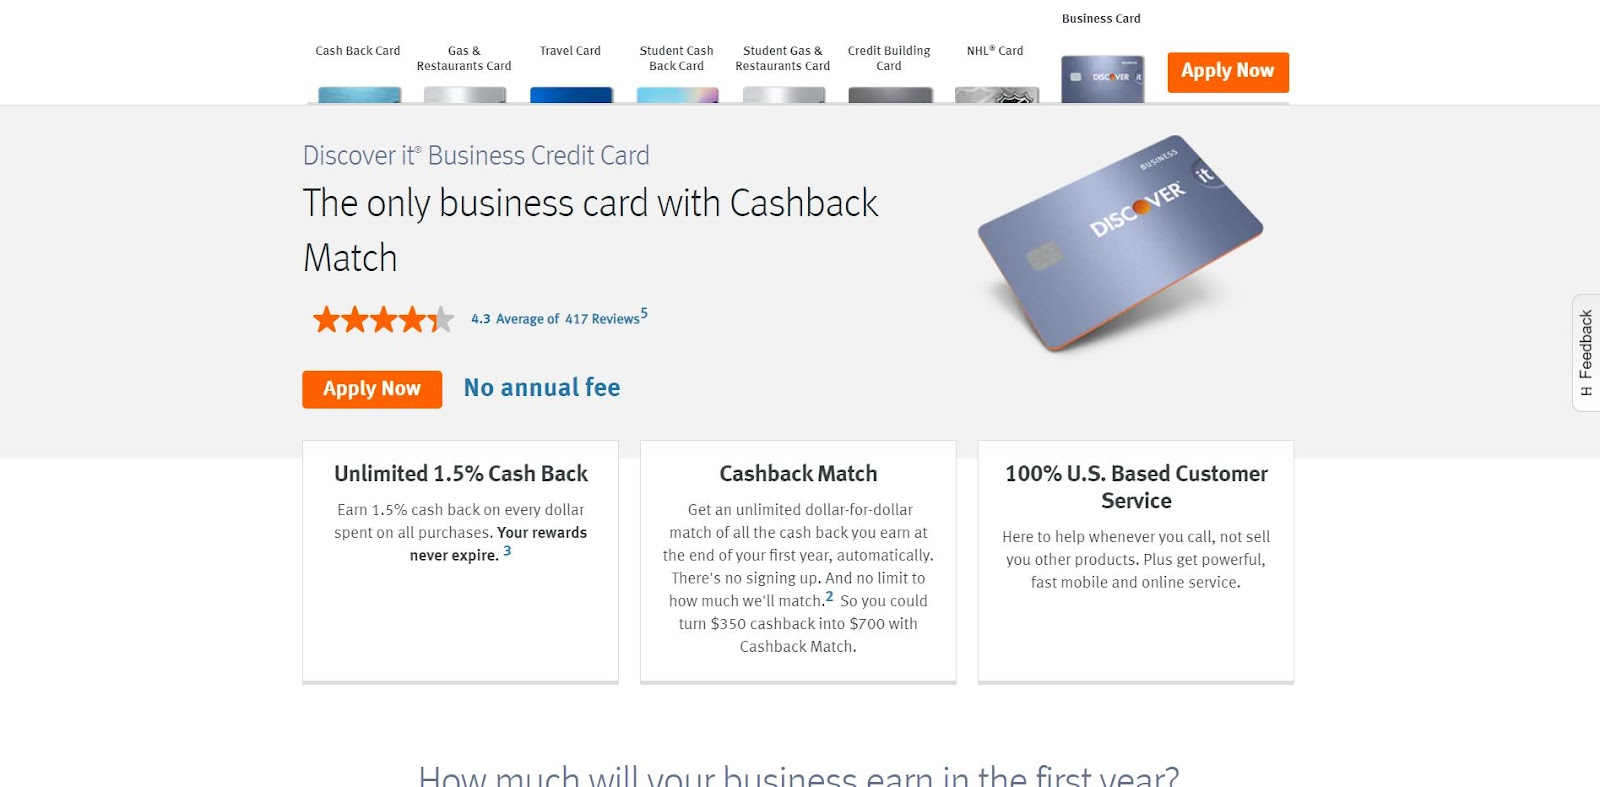 Dicover It Business Card: The Top 10 Business Credit Cards for Small Businesses